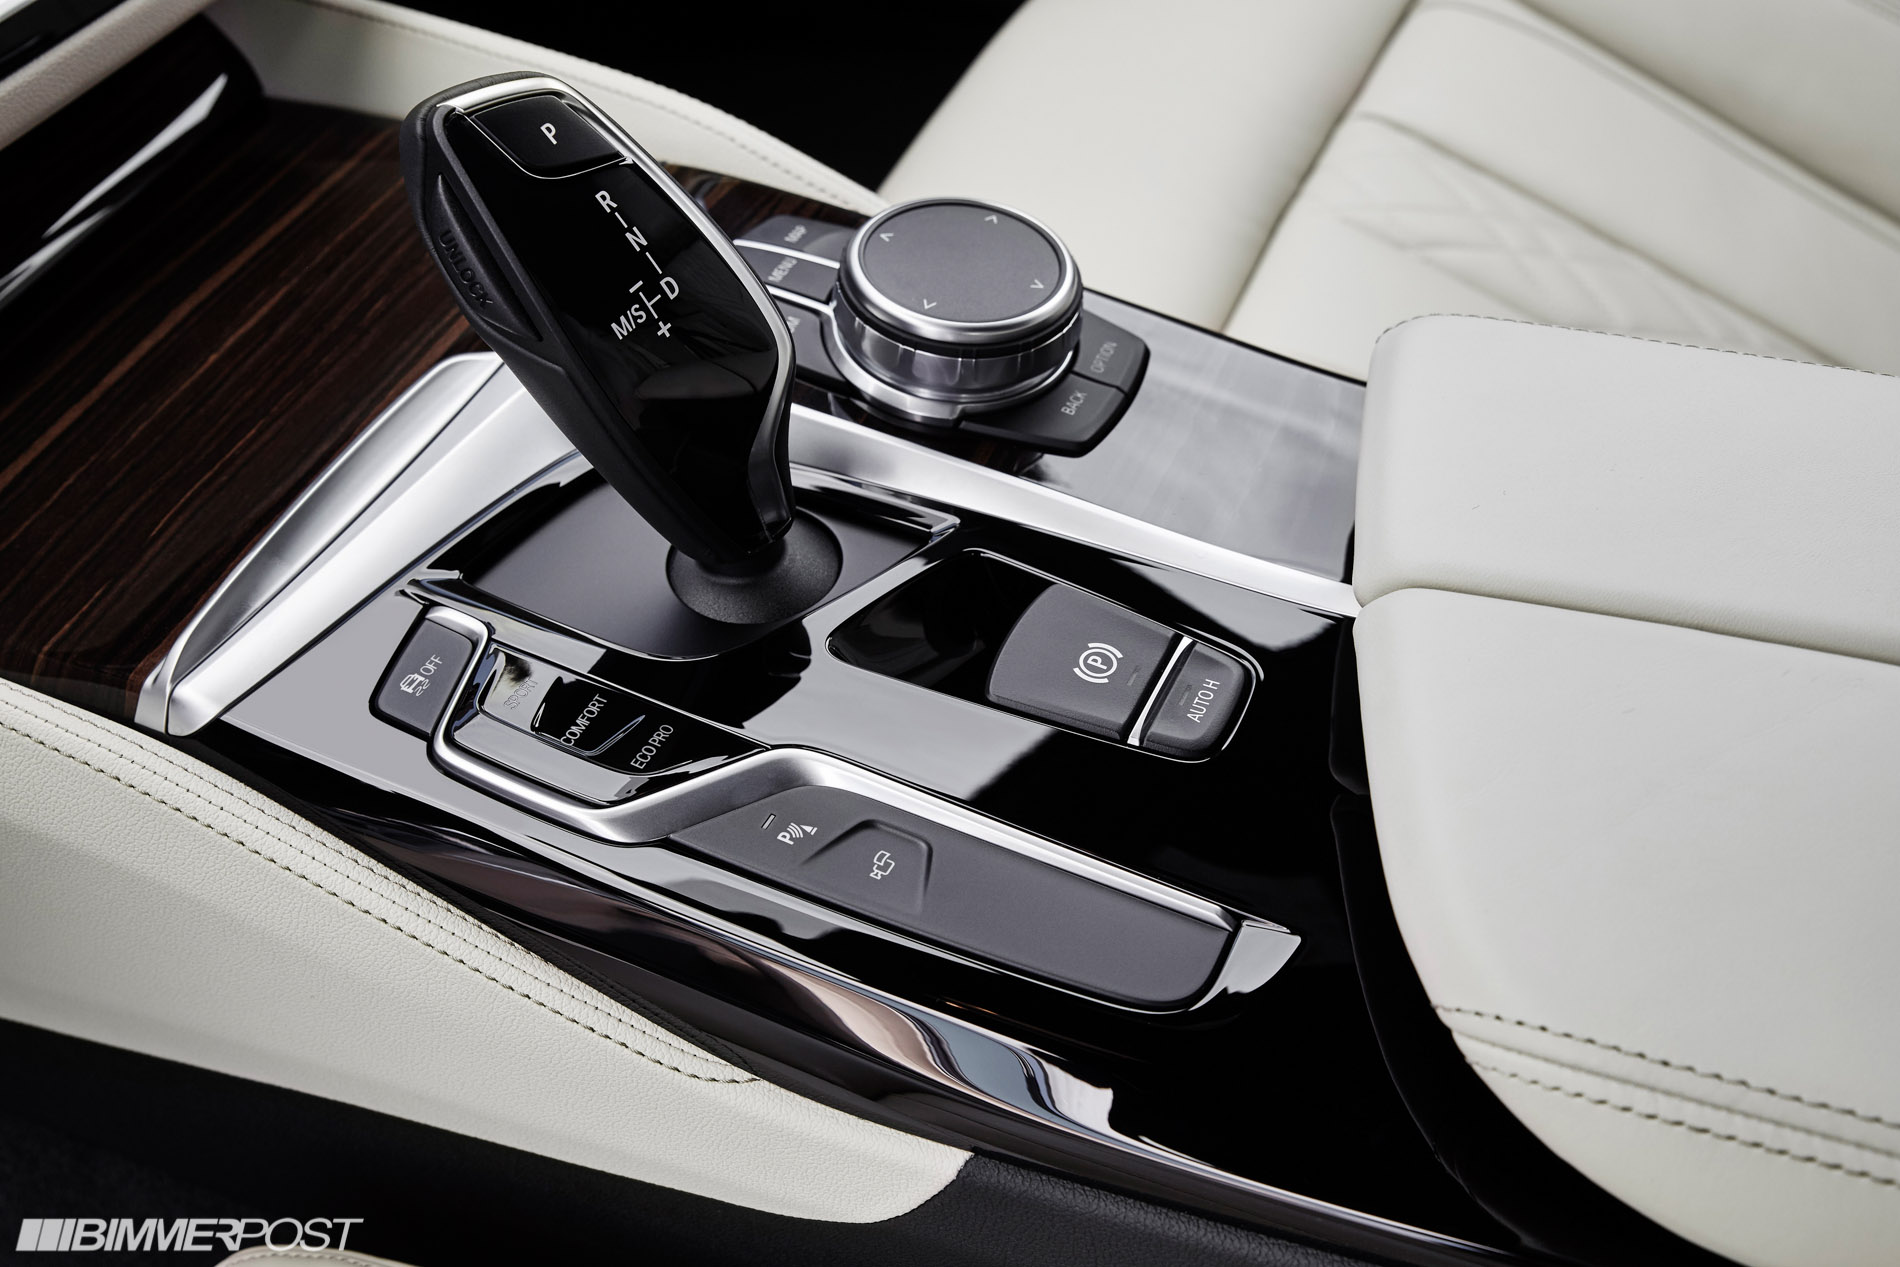 So This Must Be The 4lf Fineline Ridge Wood Trim